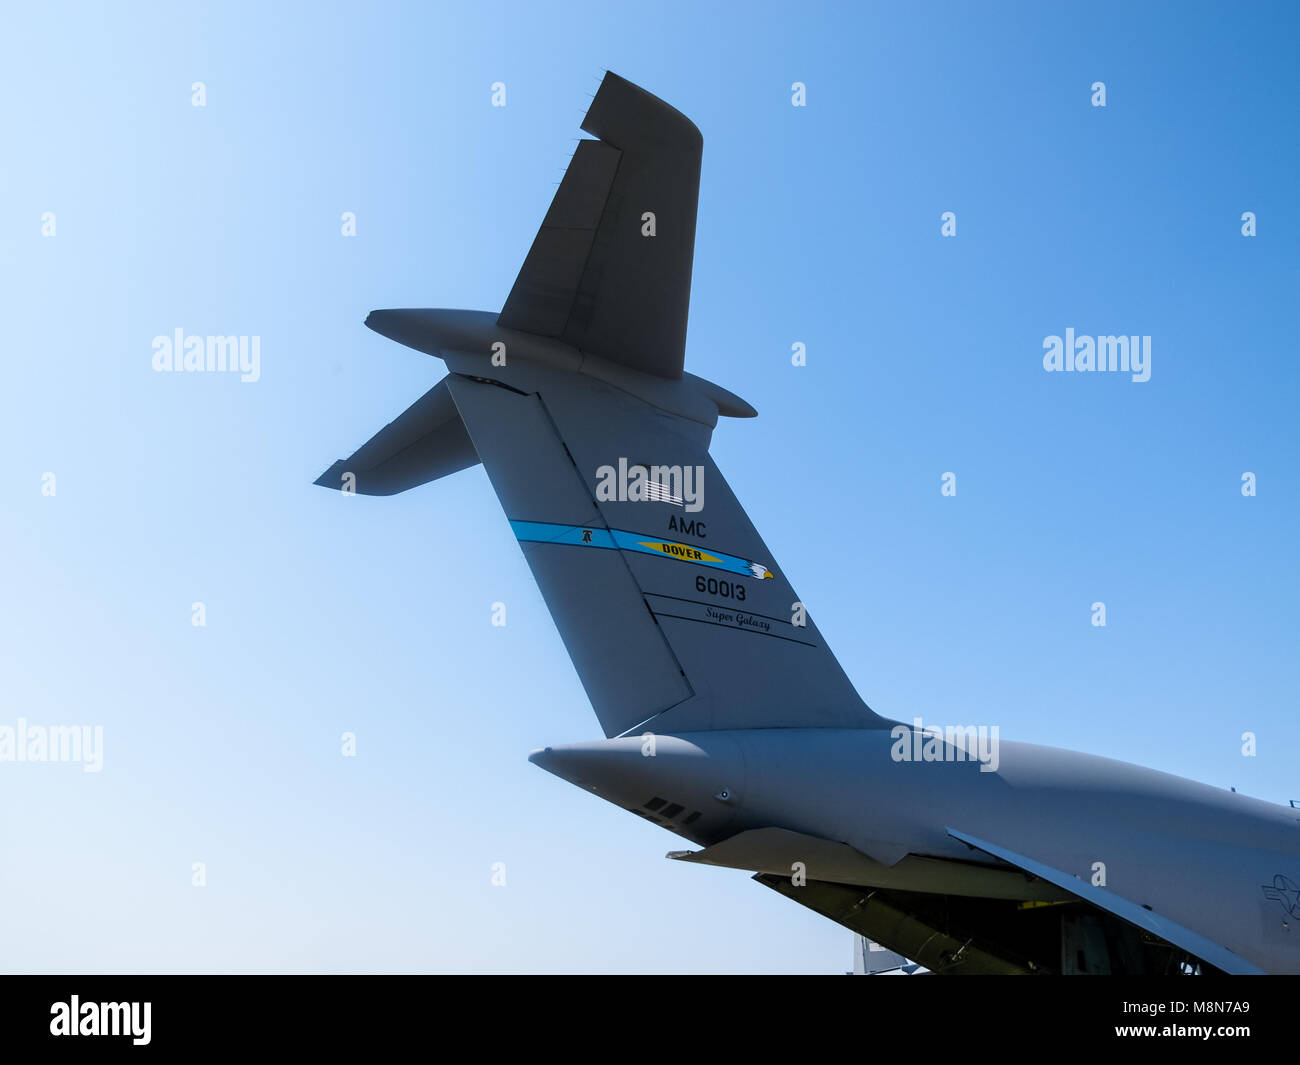 Tail of Lockheed C-5 Galaxy, military cargo strategic aircraft, International Aviation & Space Salon in Moscow. - Stock Image